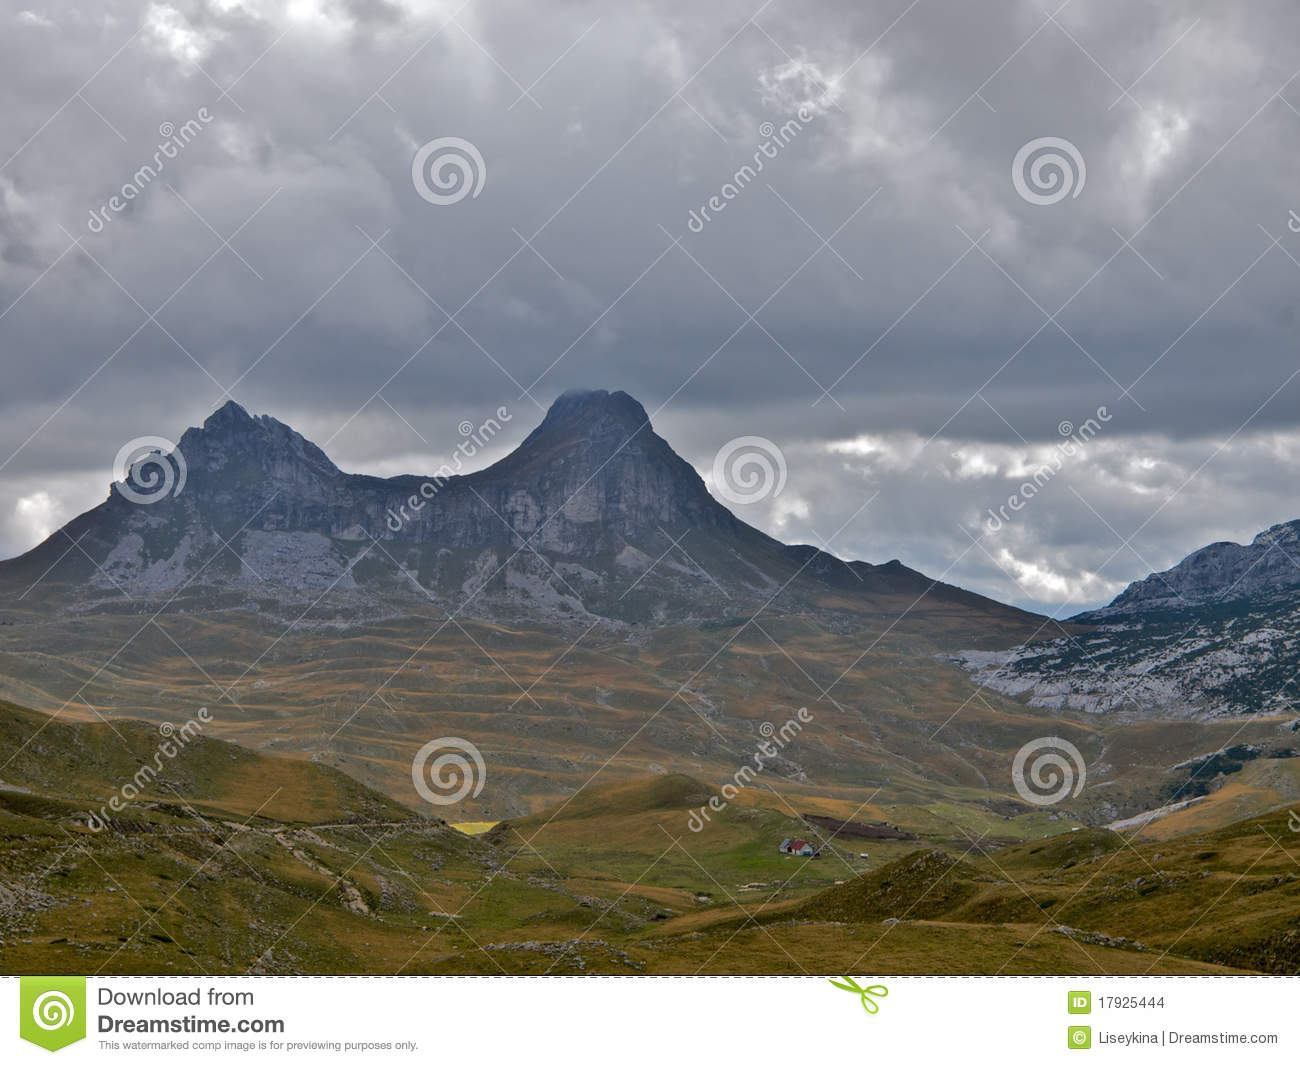 Sedlena Greda Mountain In National Park Durmitor In Montenegro  Low